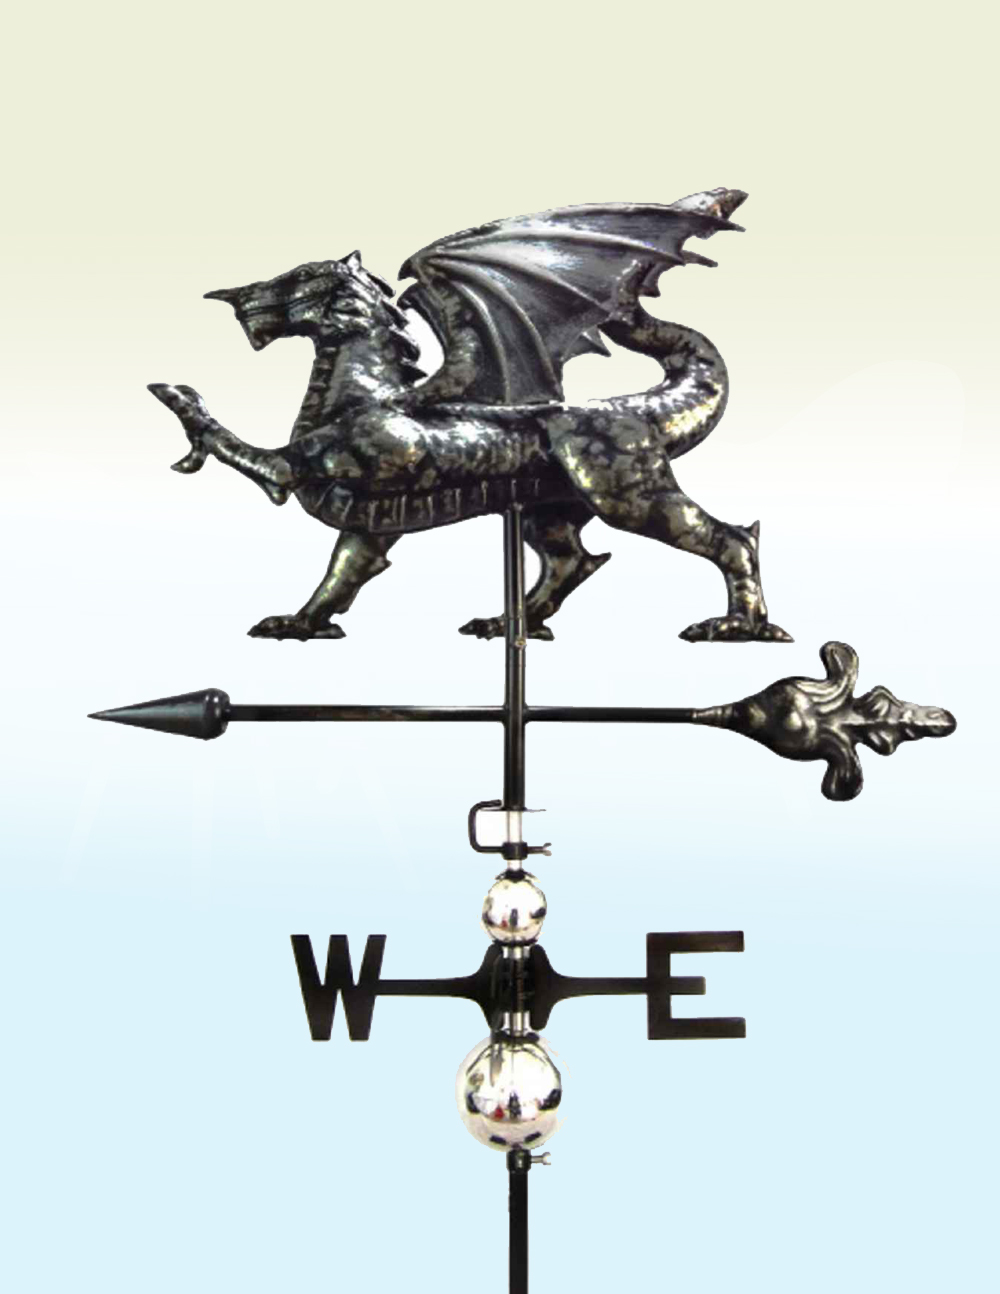 PY0815 Weathervane Dragon 3D Stainless Steel | Avant Garden Guernsey